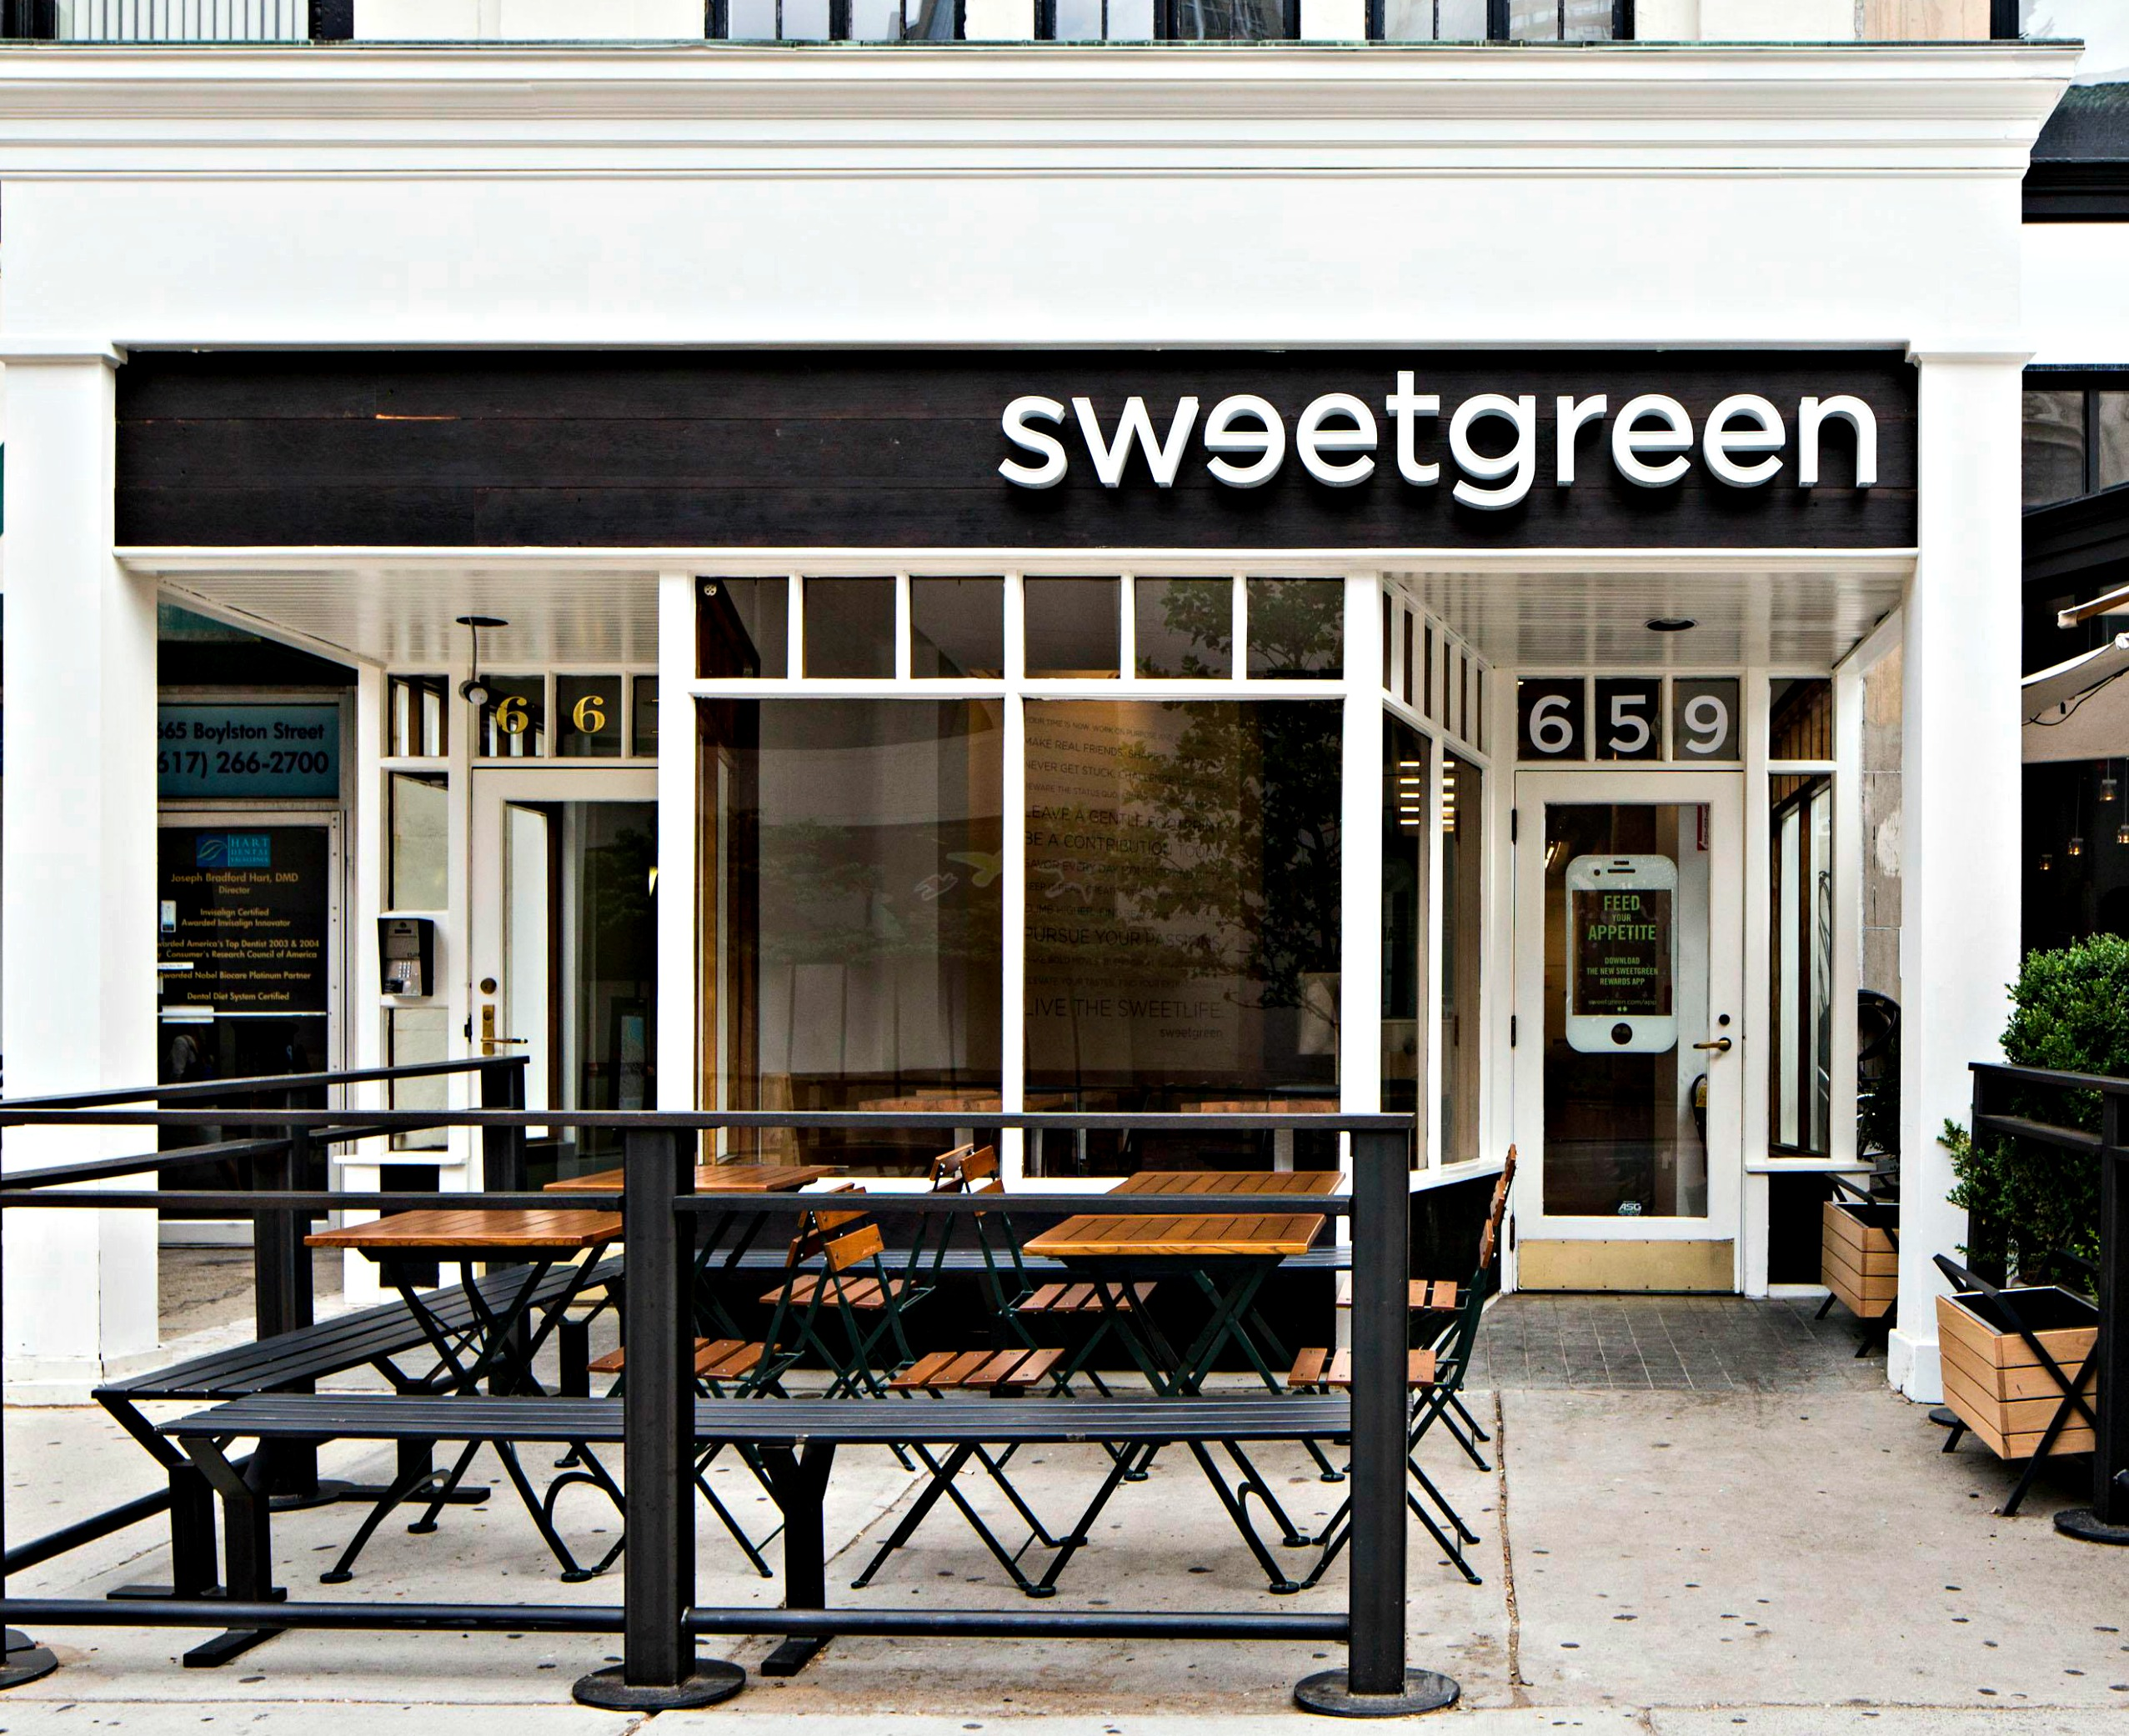 The 2016 sweetgreen promo code that'll get you $3 off